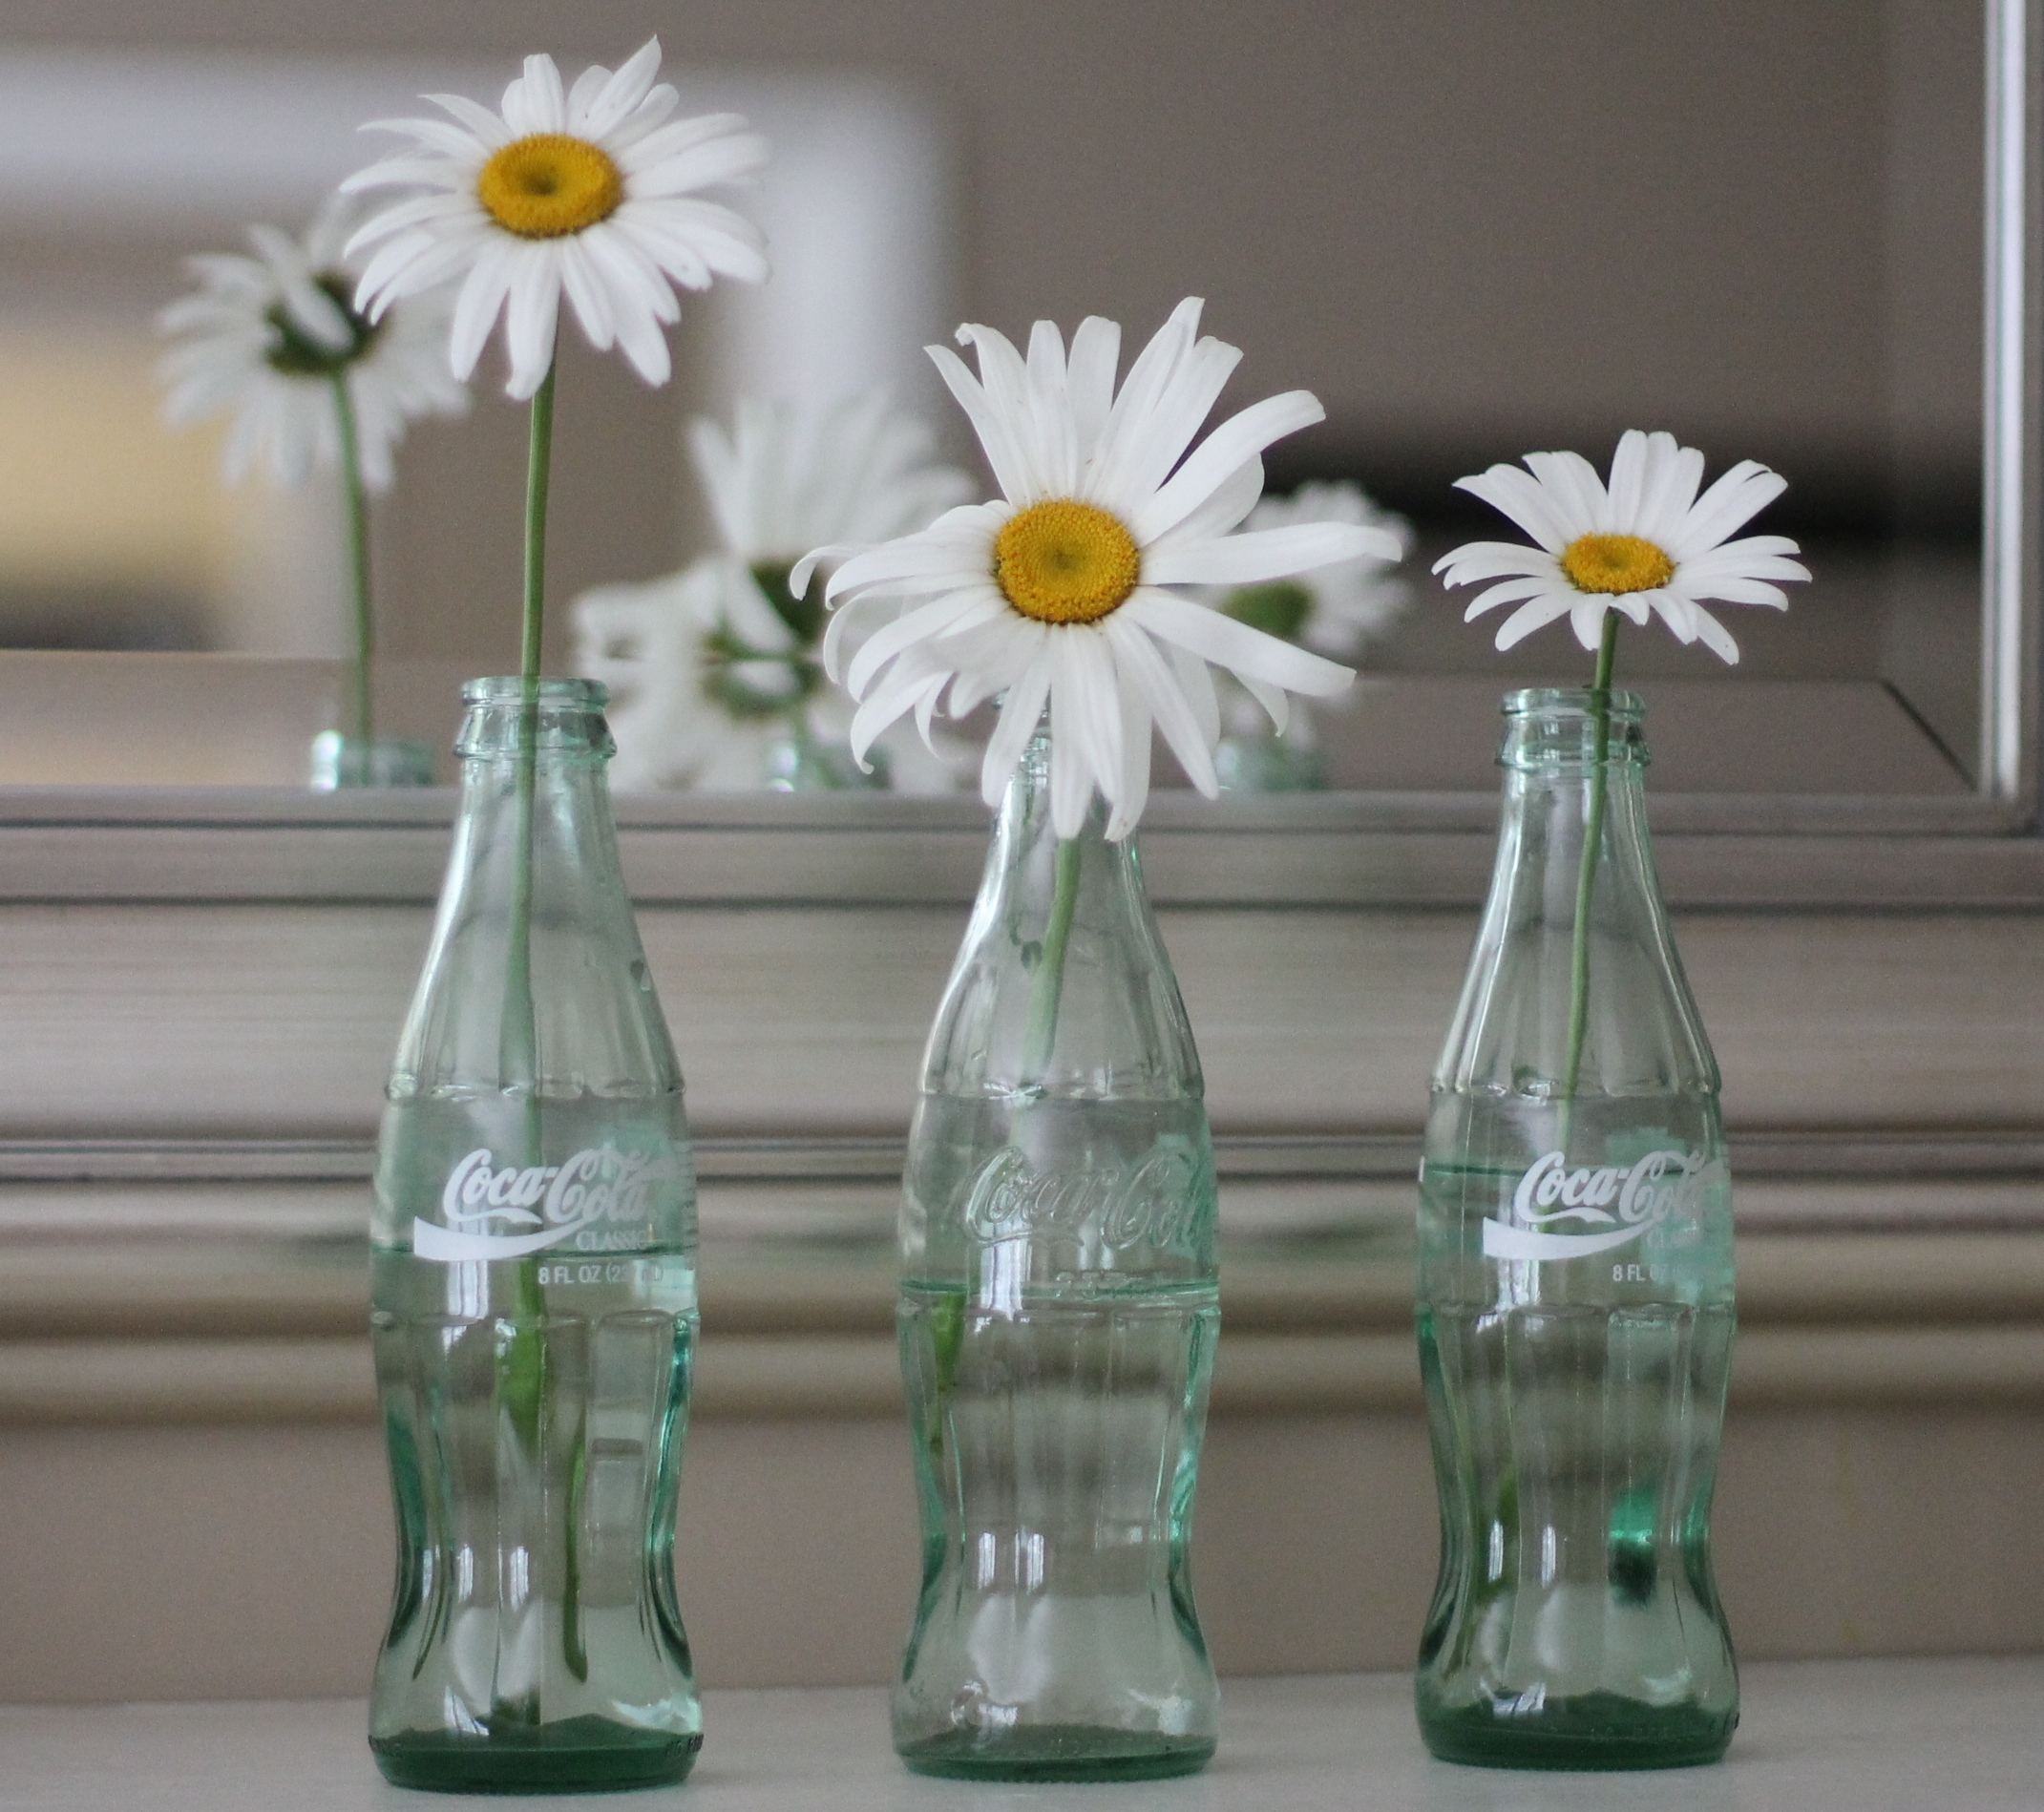 coke-bottles-white-daisies-trilogy-against-mirror